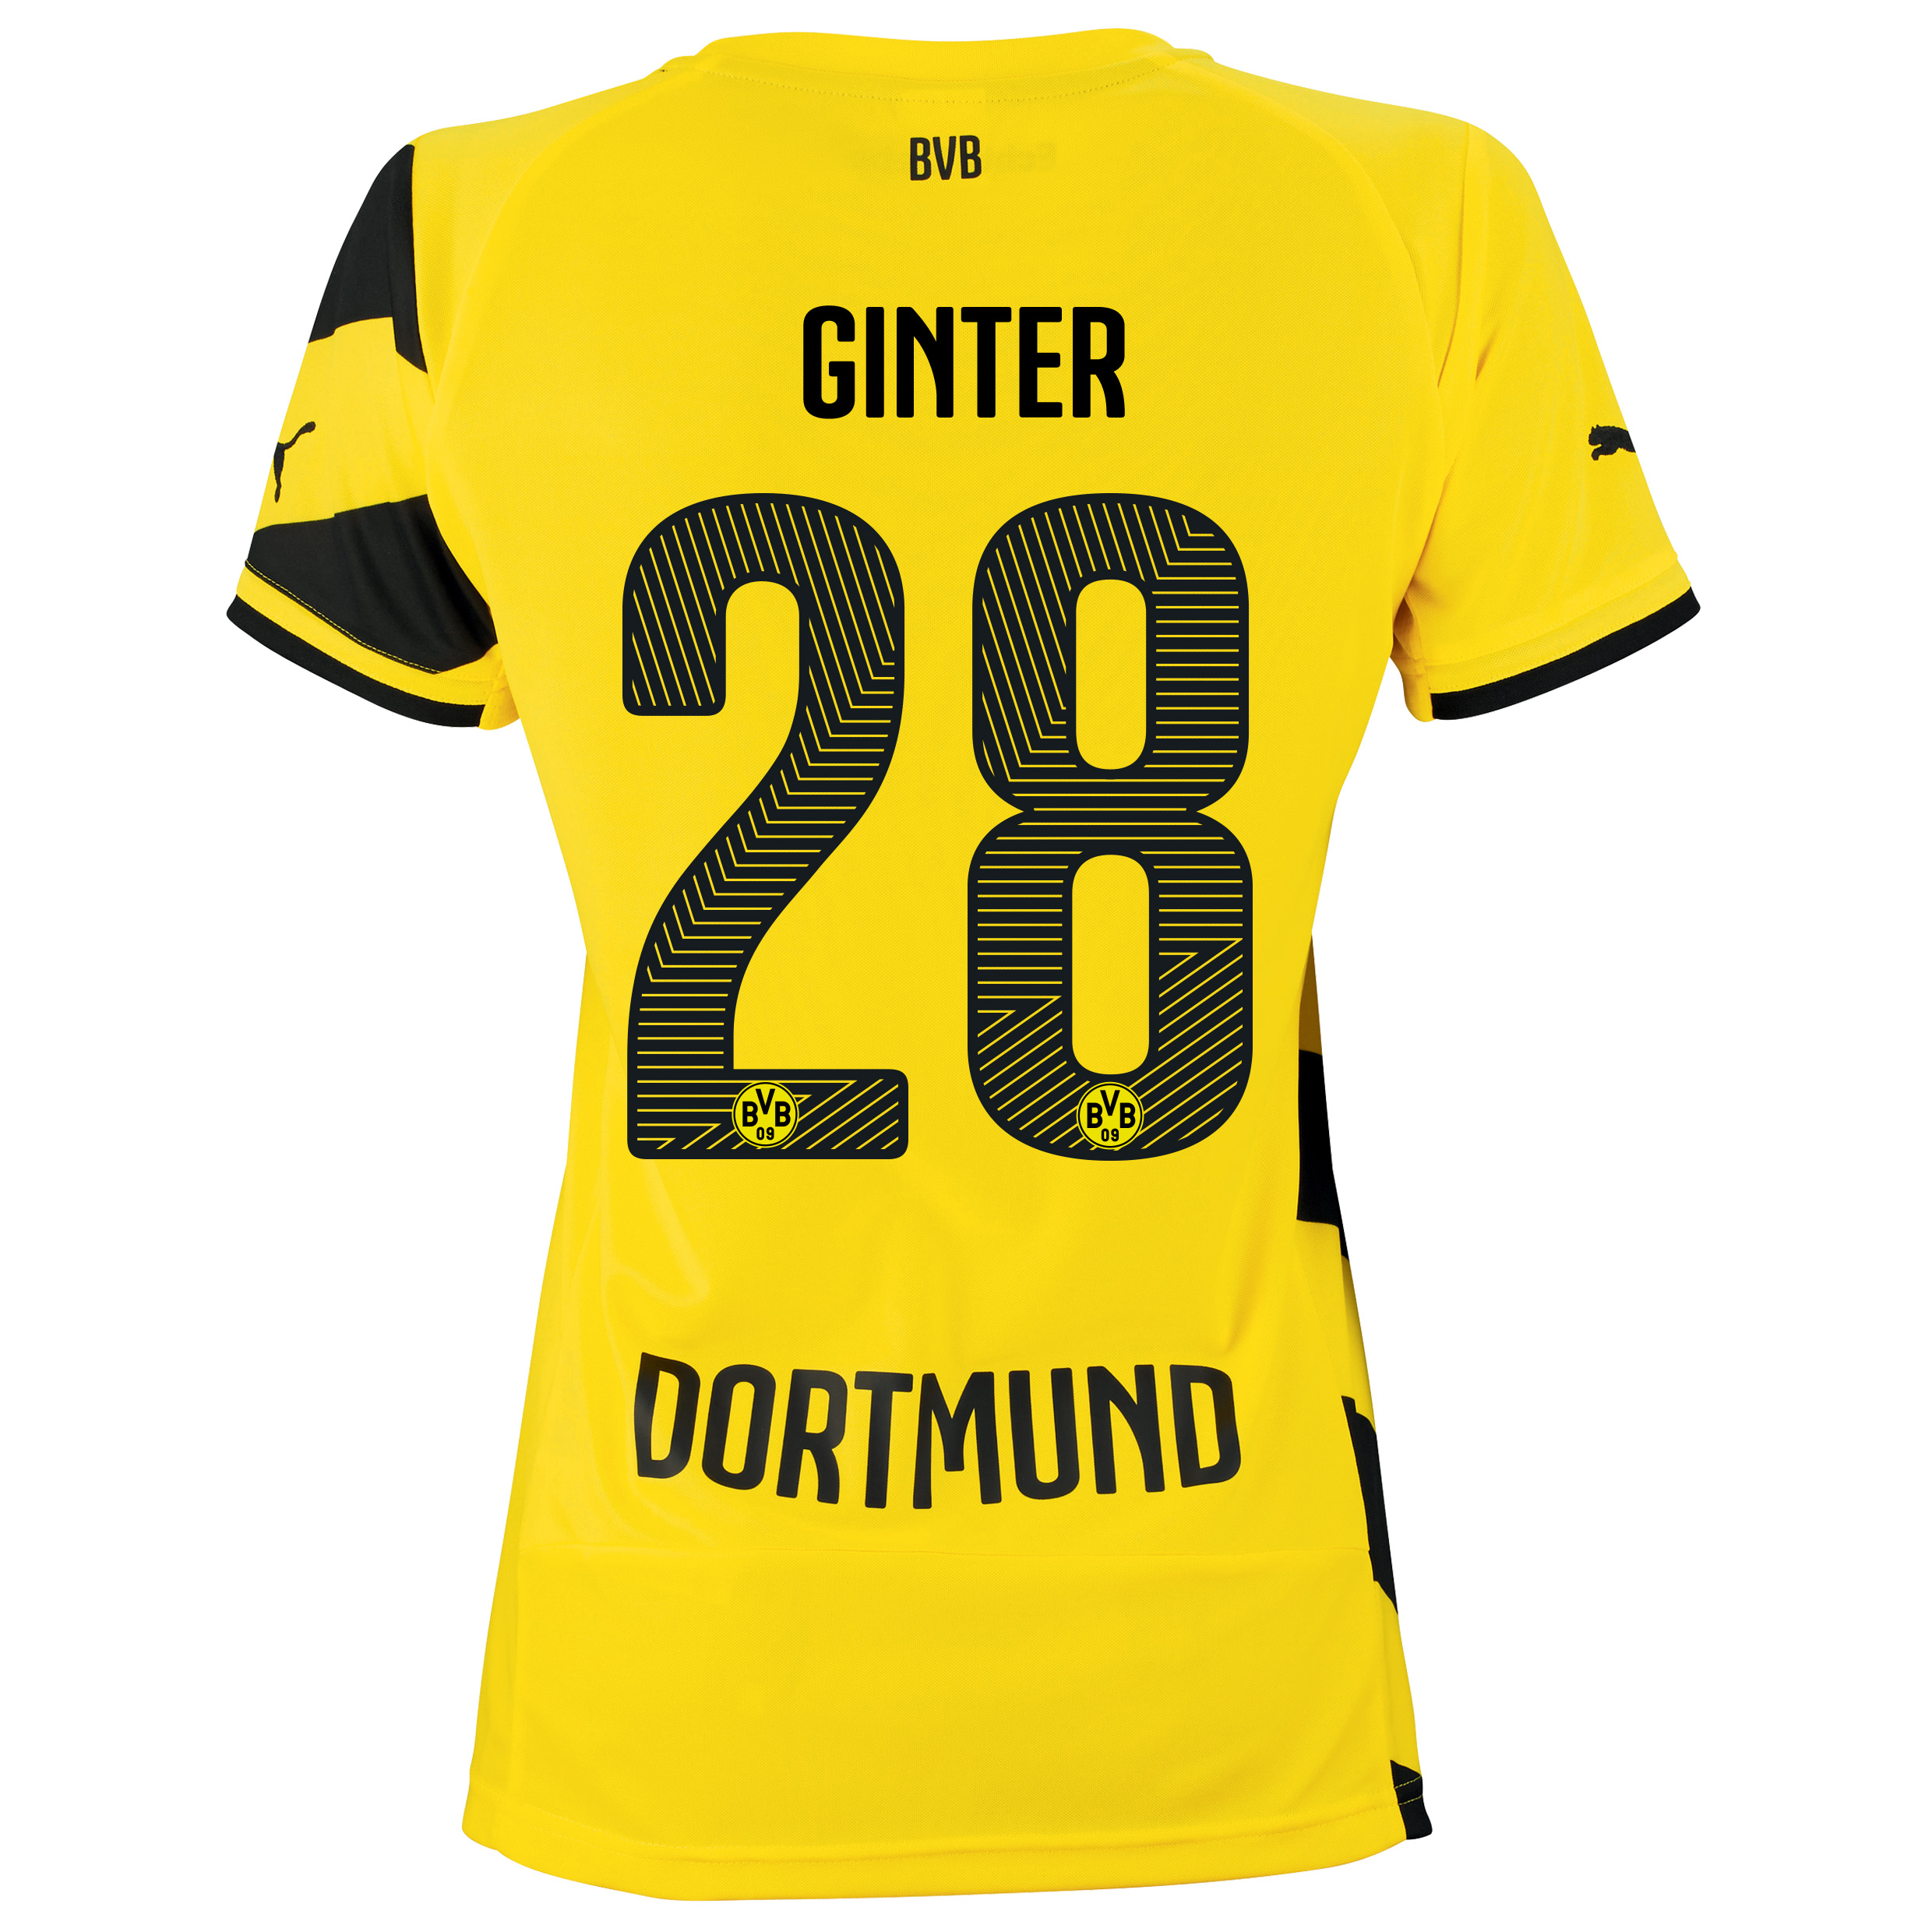 BVB Home Shirt 2014/15 - Womens with Matthias Ginter 28 printing